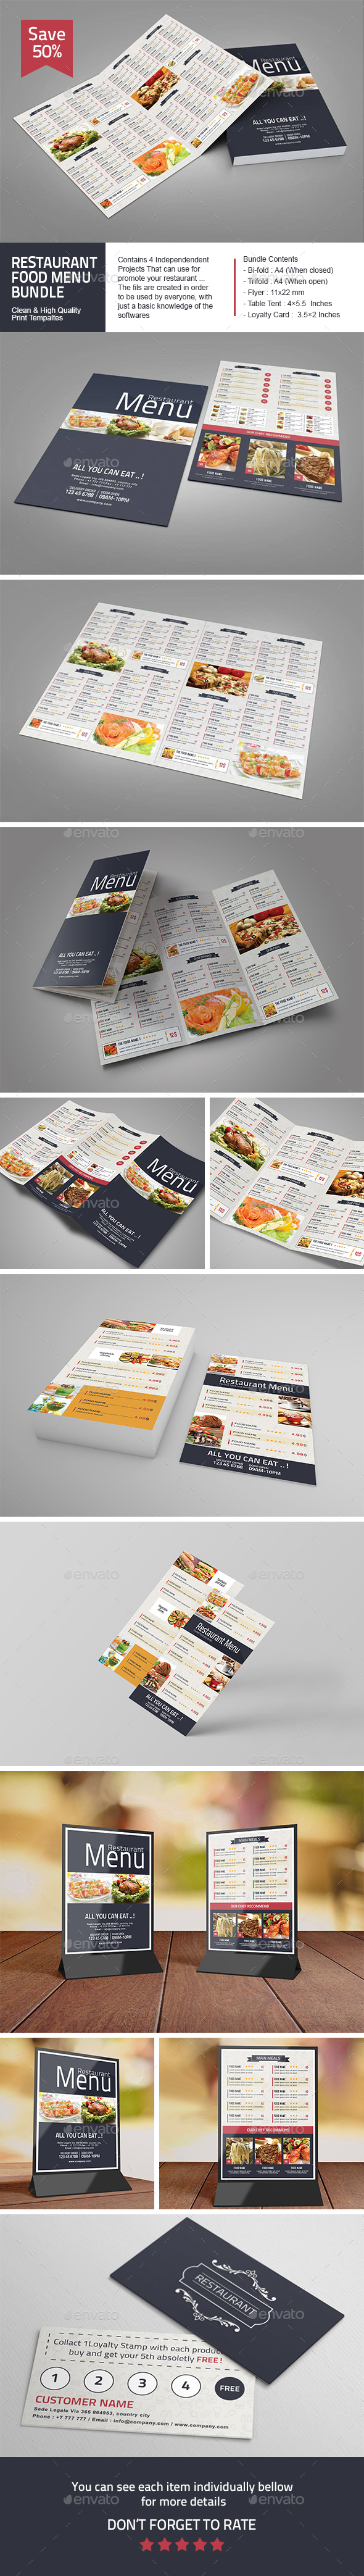 Restaurant Food Menu Bundle - Food Menus Print Templates